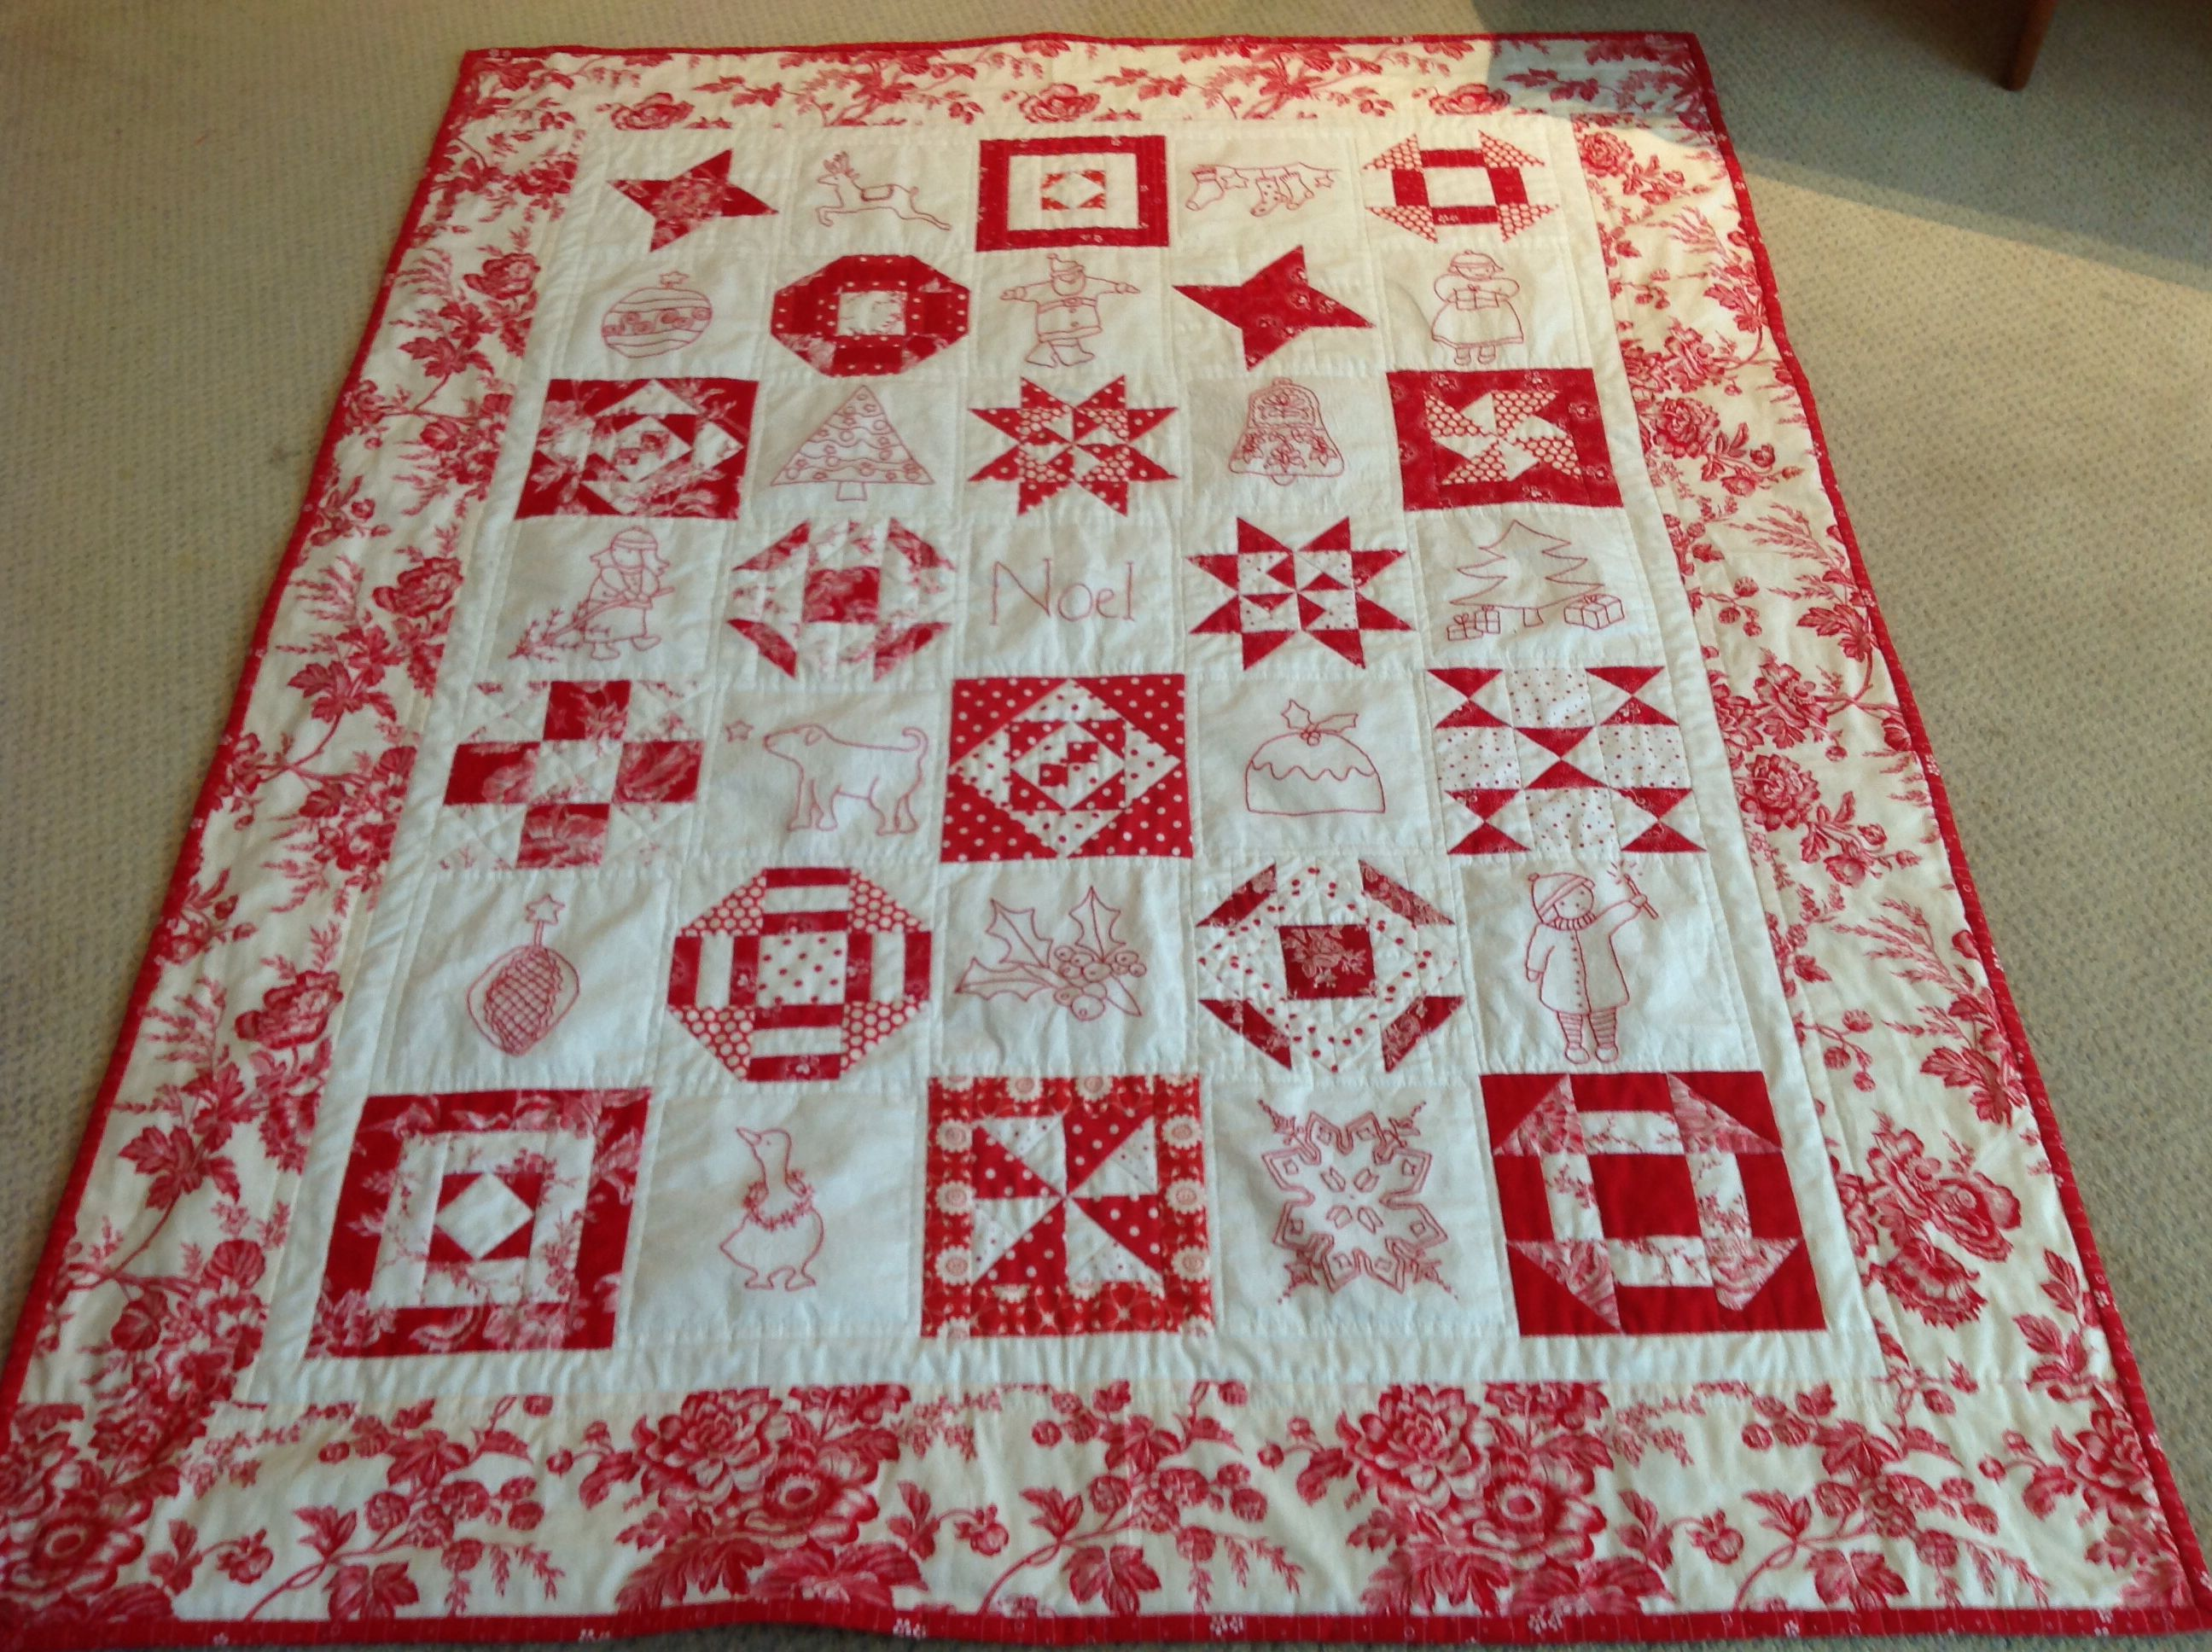 Redwork Quilt Patterns Christmas : My Christmas Redwork quilt 2013 Quilt patterns Pinterest